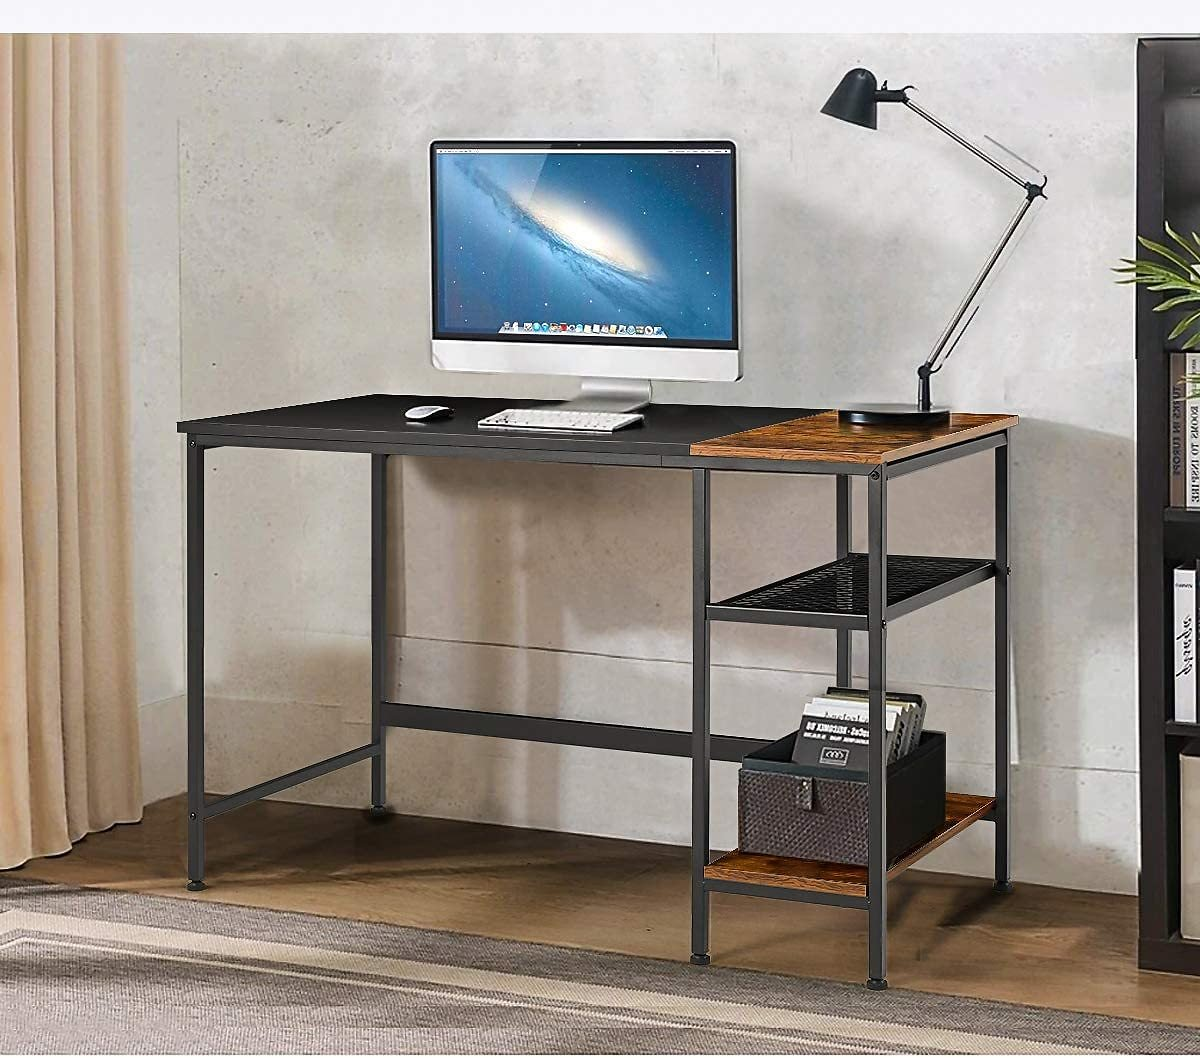 Erommy Computer Desk with Storage Bookshelves,47 Inch Modern Sturdy Writing Desk,PC Table with Space Saving Design,Home Office D